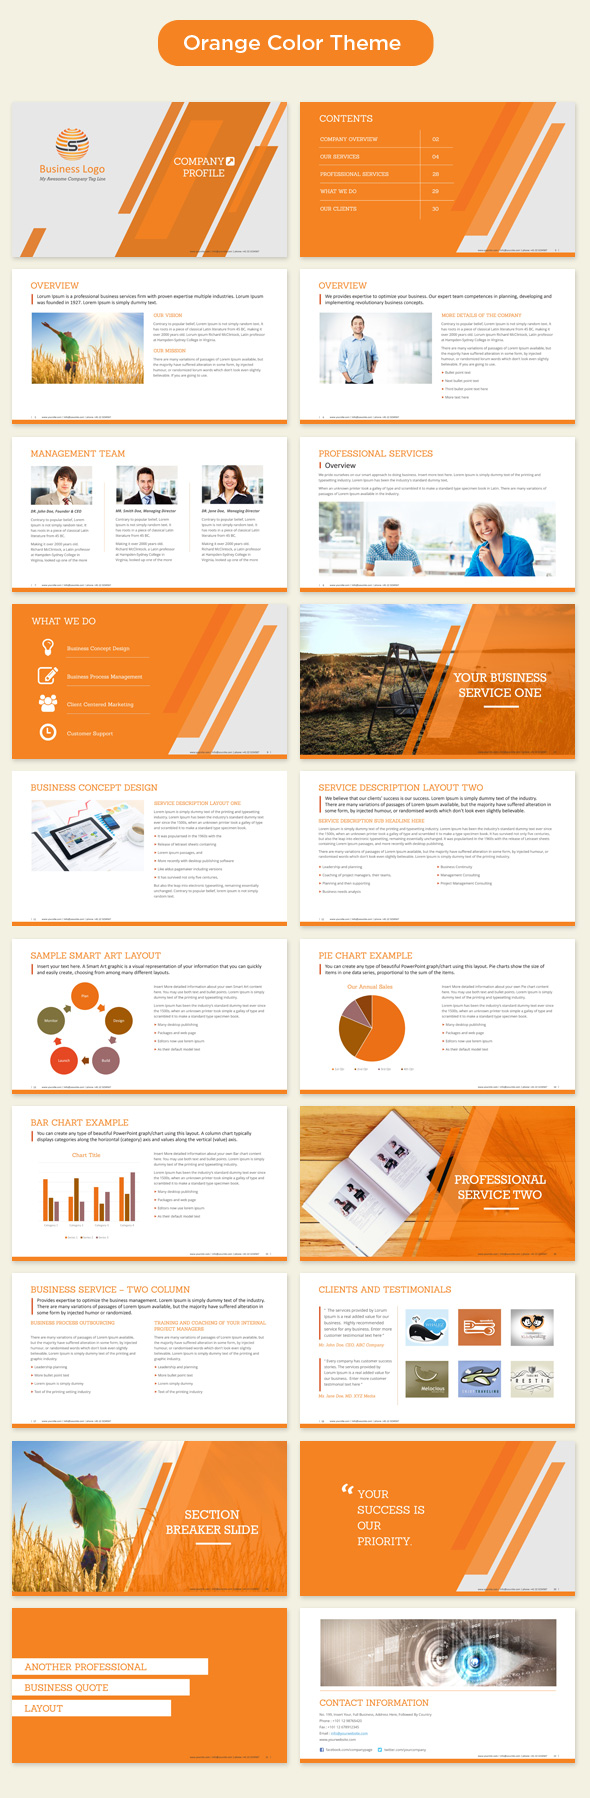 Company profile powerpoint template 350 master ppt for Personal profile design templates